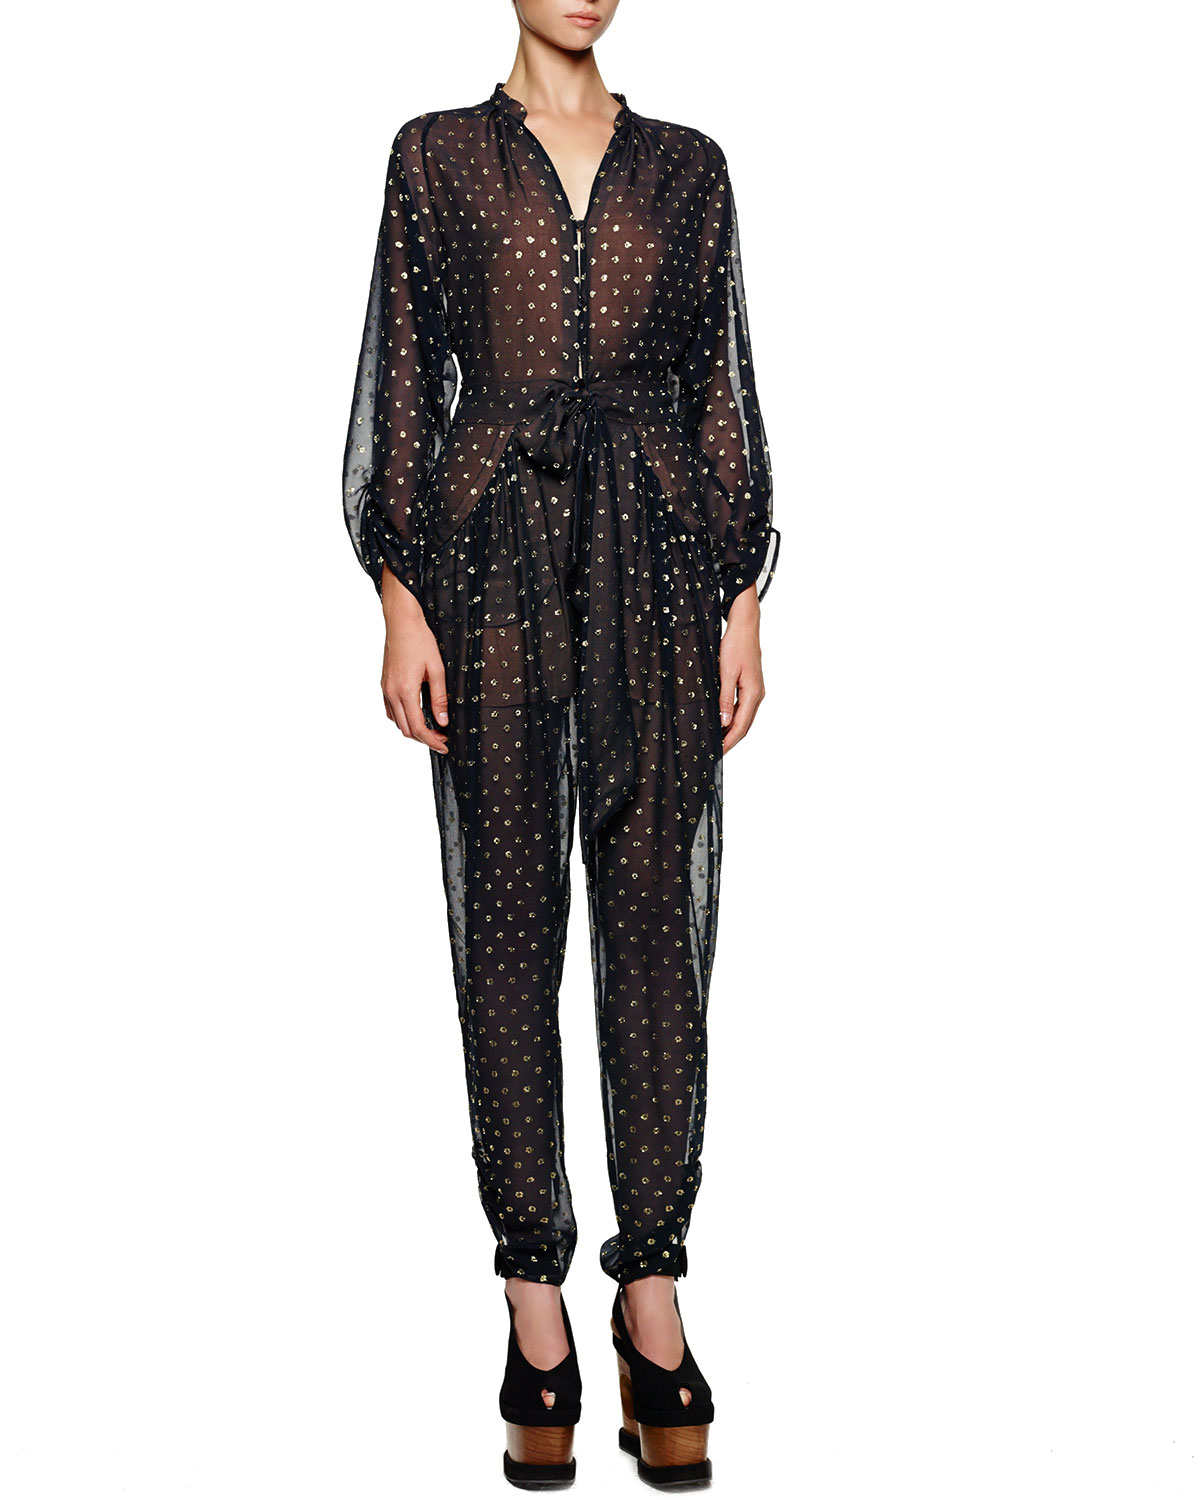 c92b44c5b4a Lyst - Stella Mccartney Gold Dotted Tie-front Tapered Jumpsuit in Black